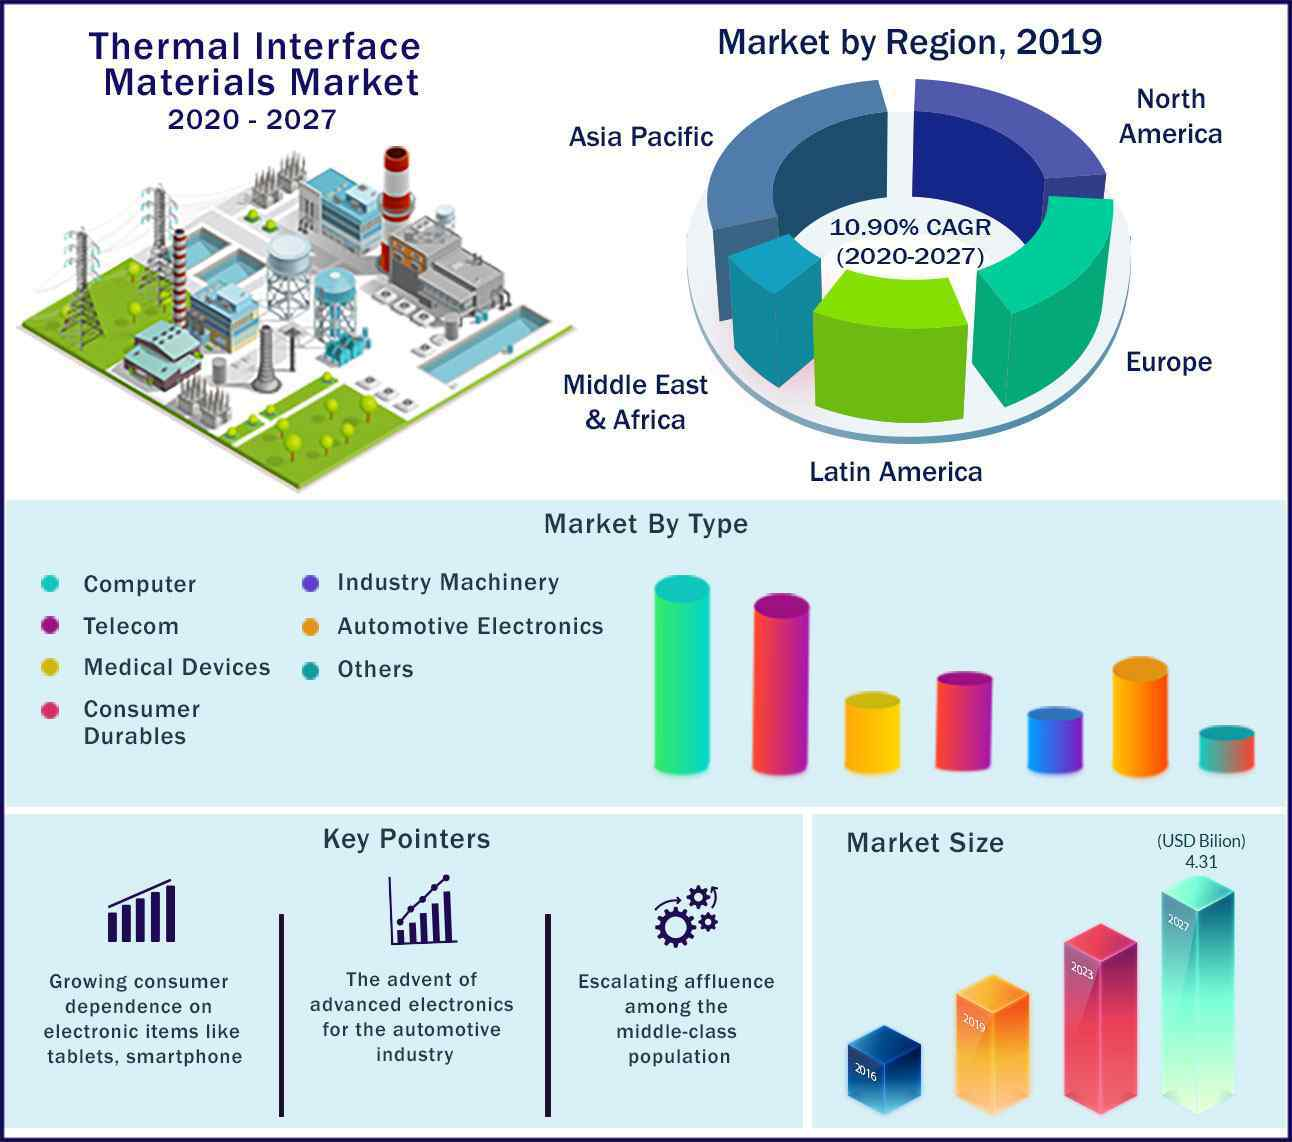 Global Thermal Interface Materials Market 2020 to 2027